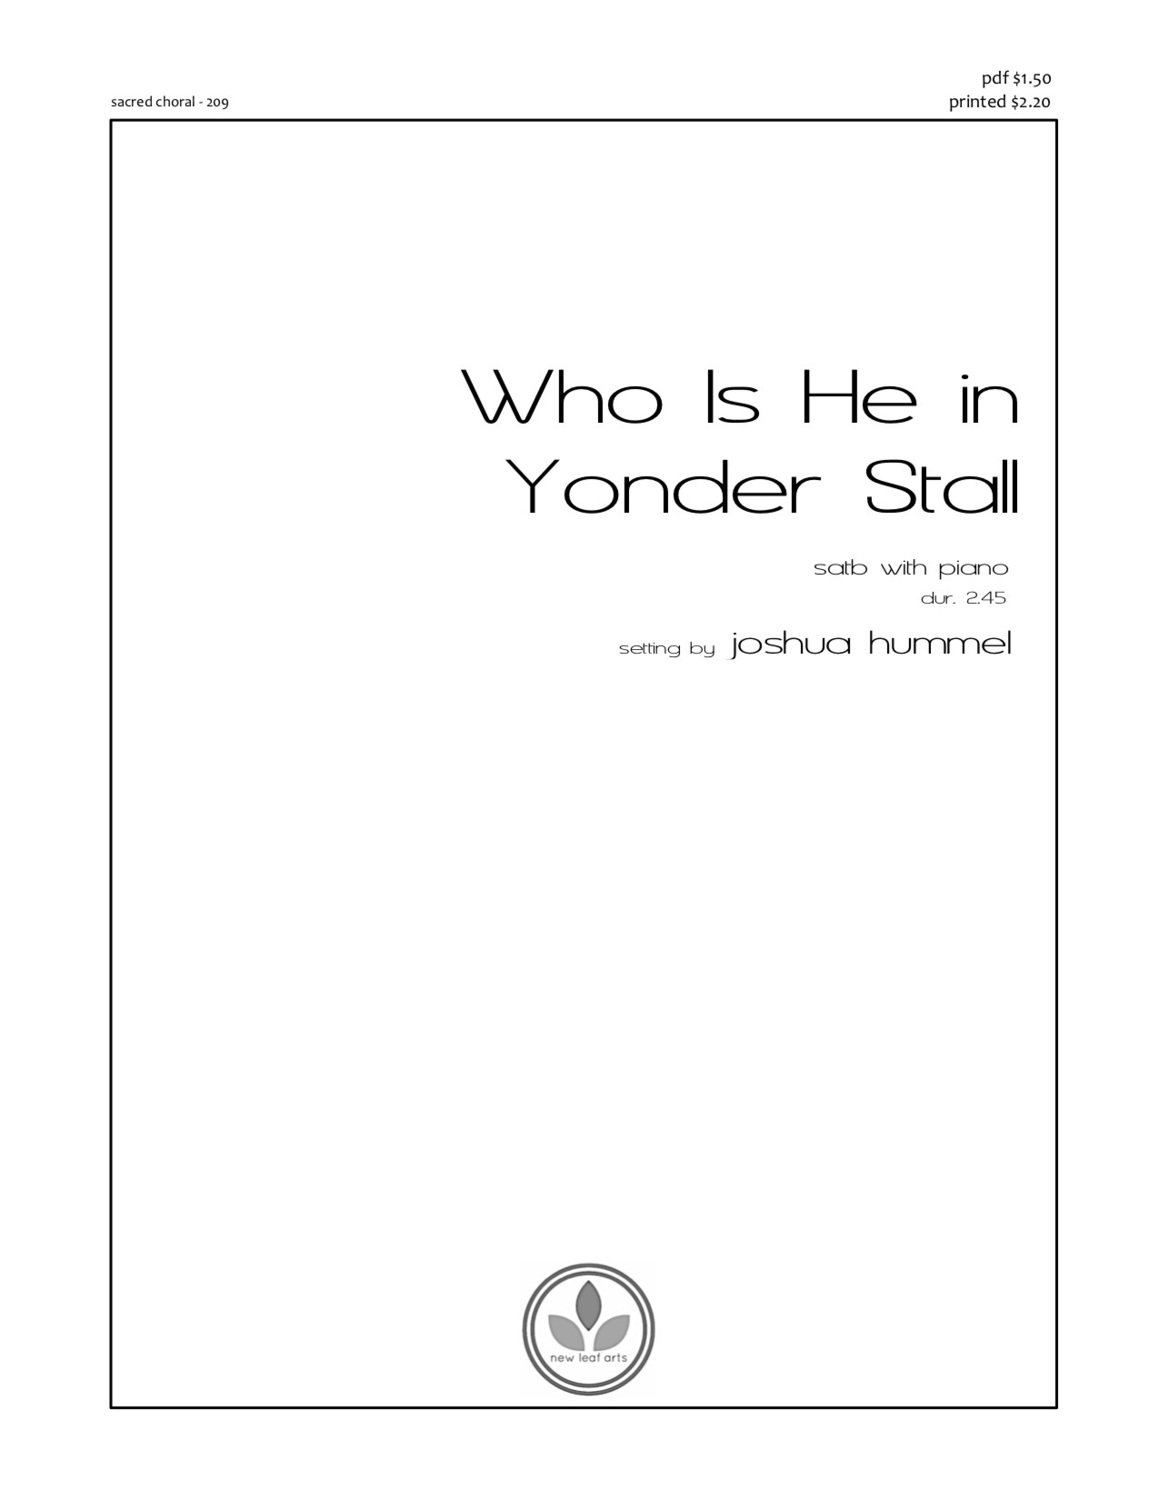 WHO IS HE IN YONDER STALL - SATB with piano